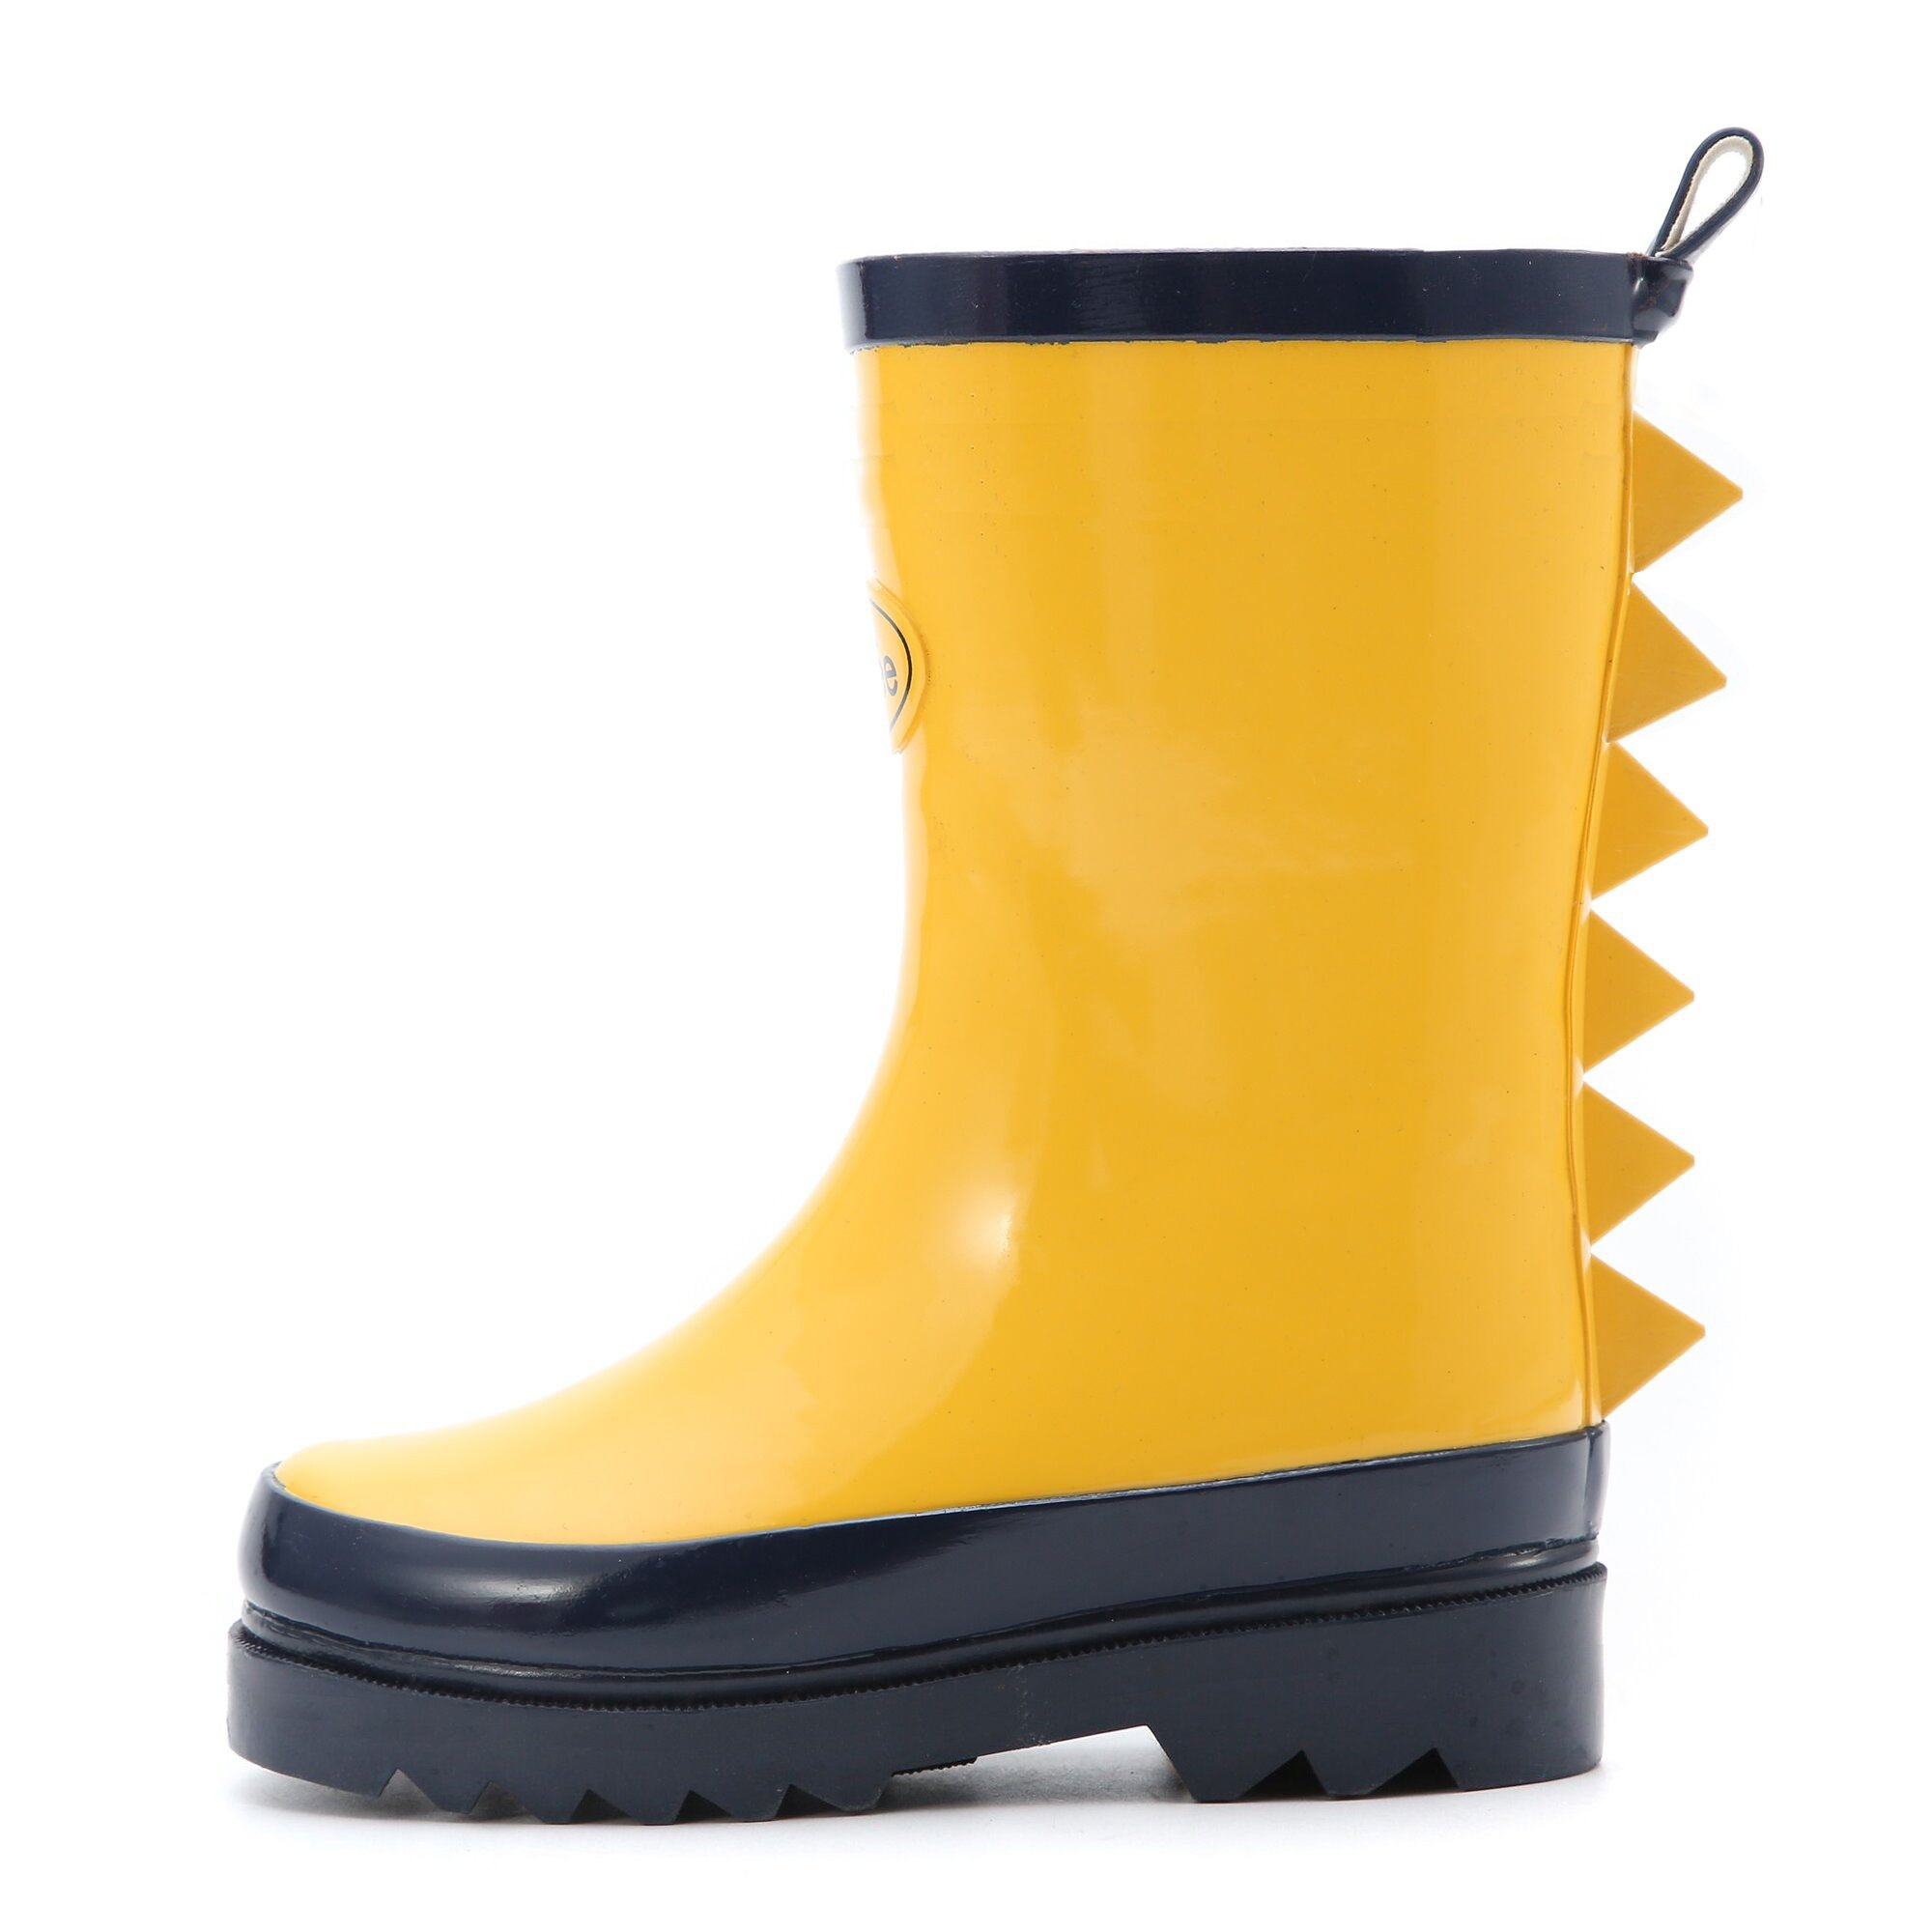 Little Kids Boys Rain Boots Yellow Rubber Waterproof in Solid Color for Unisex Shark Fin Removable Insoles Anti-Slippery Durable Sole with Grip (Size 12)